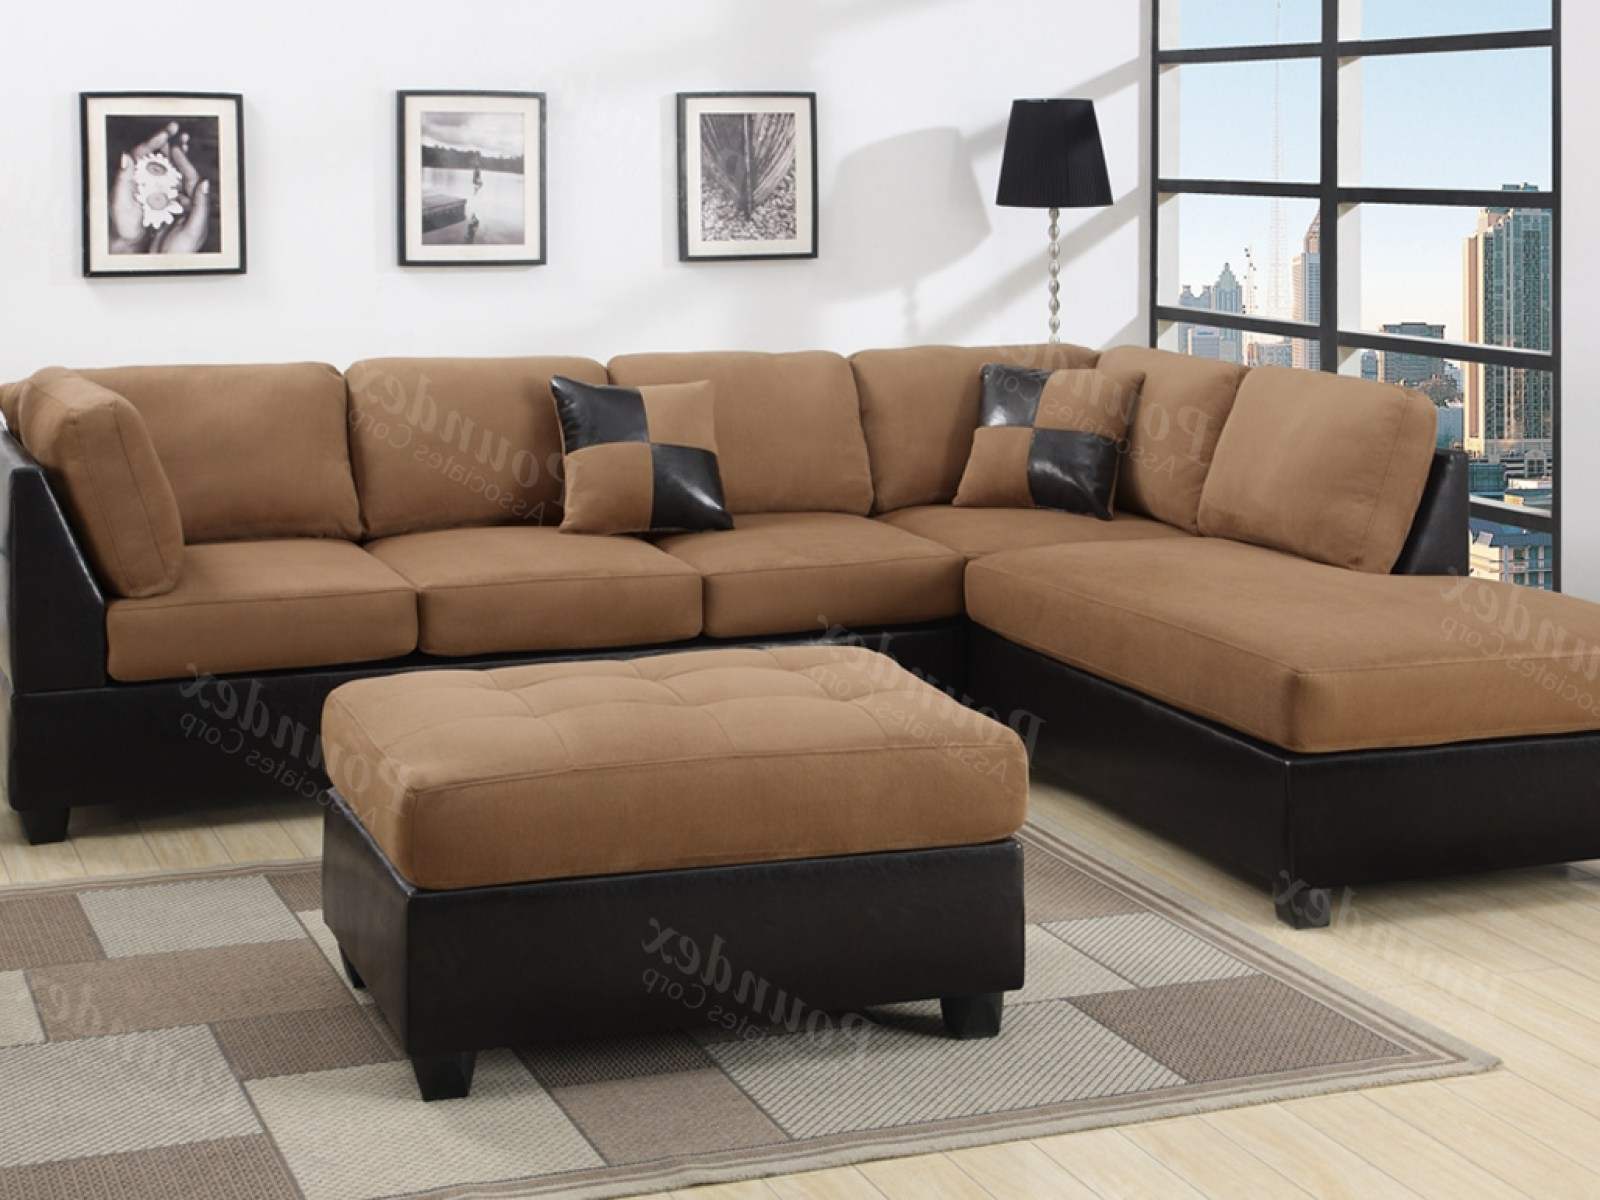 Sectional Sofas That Can Be Rearranged Regarding Most Popular ▻ Sofa : 15 3058702 Poster P 1 A Modular Sofa That Can Rearrange (View 11 of 15)